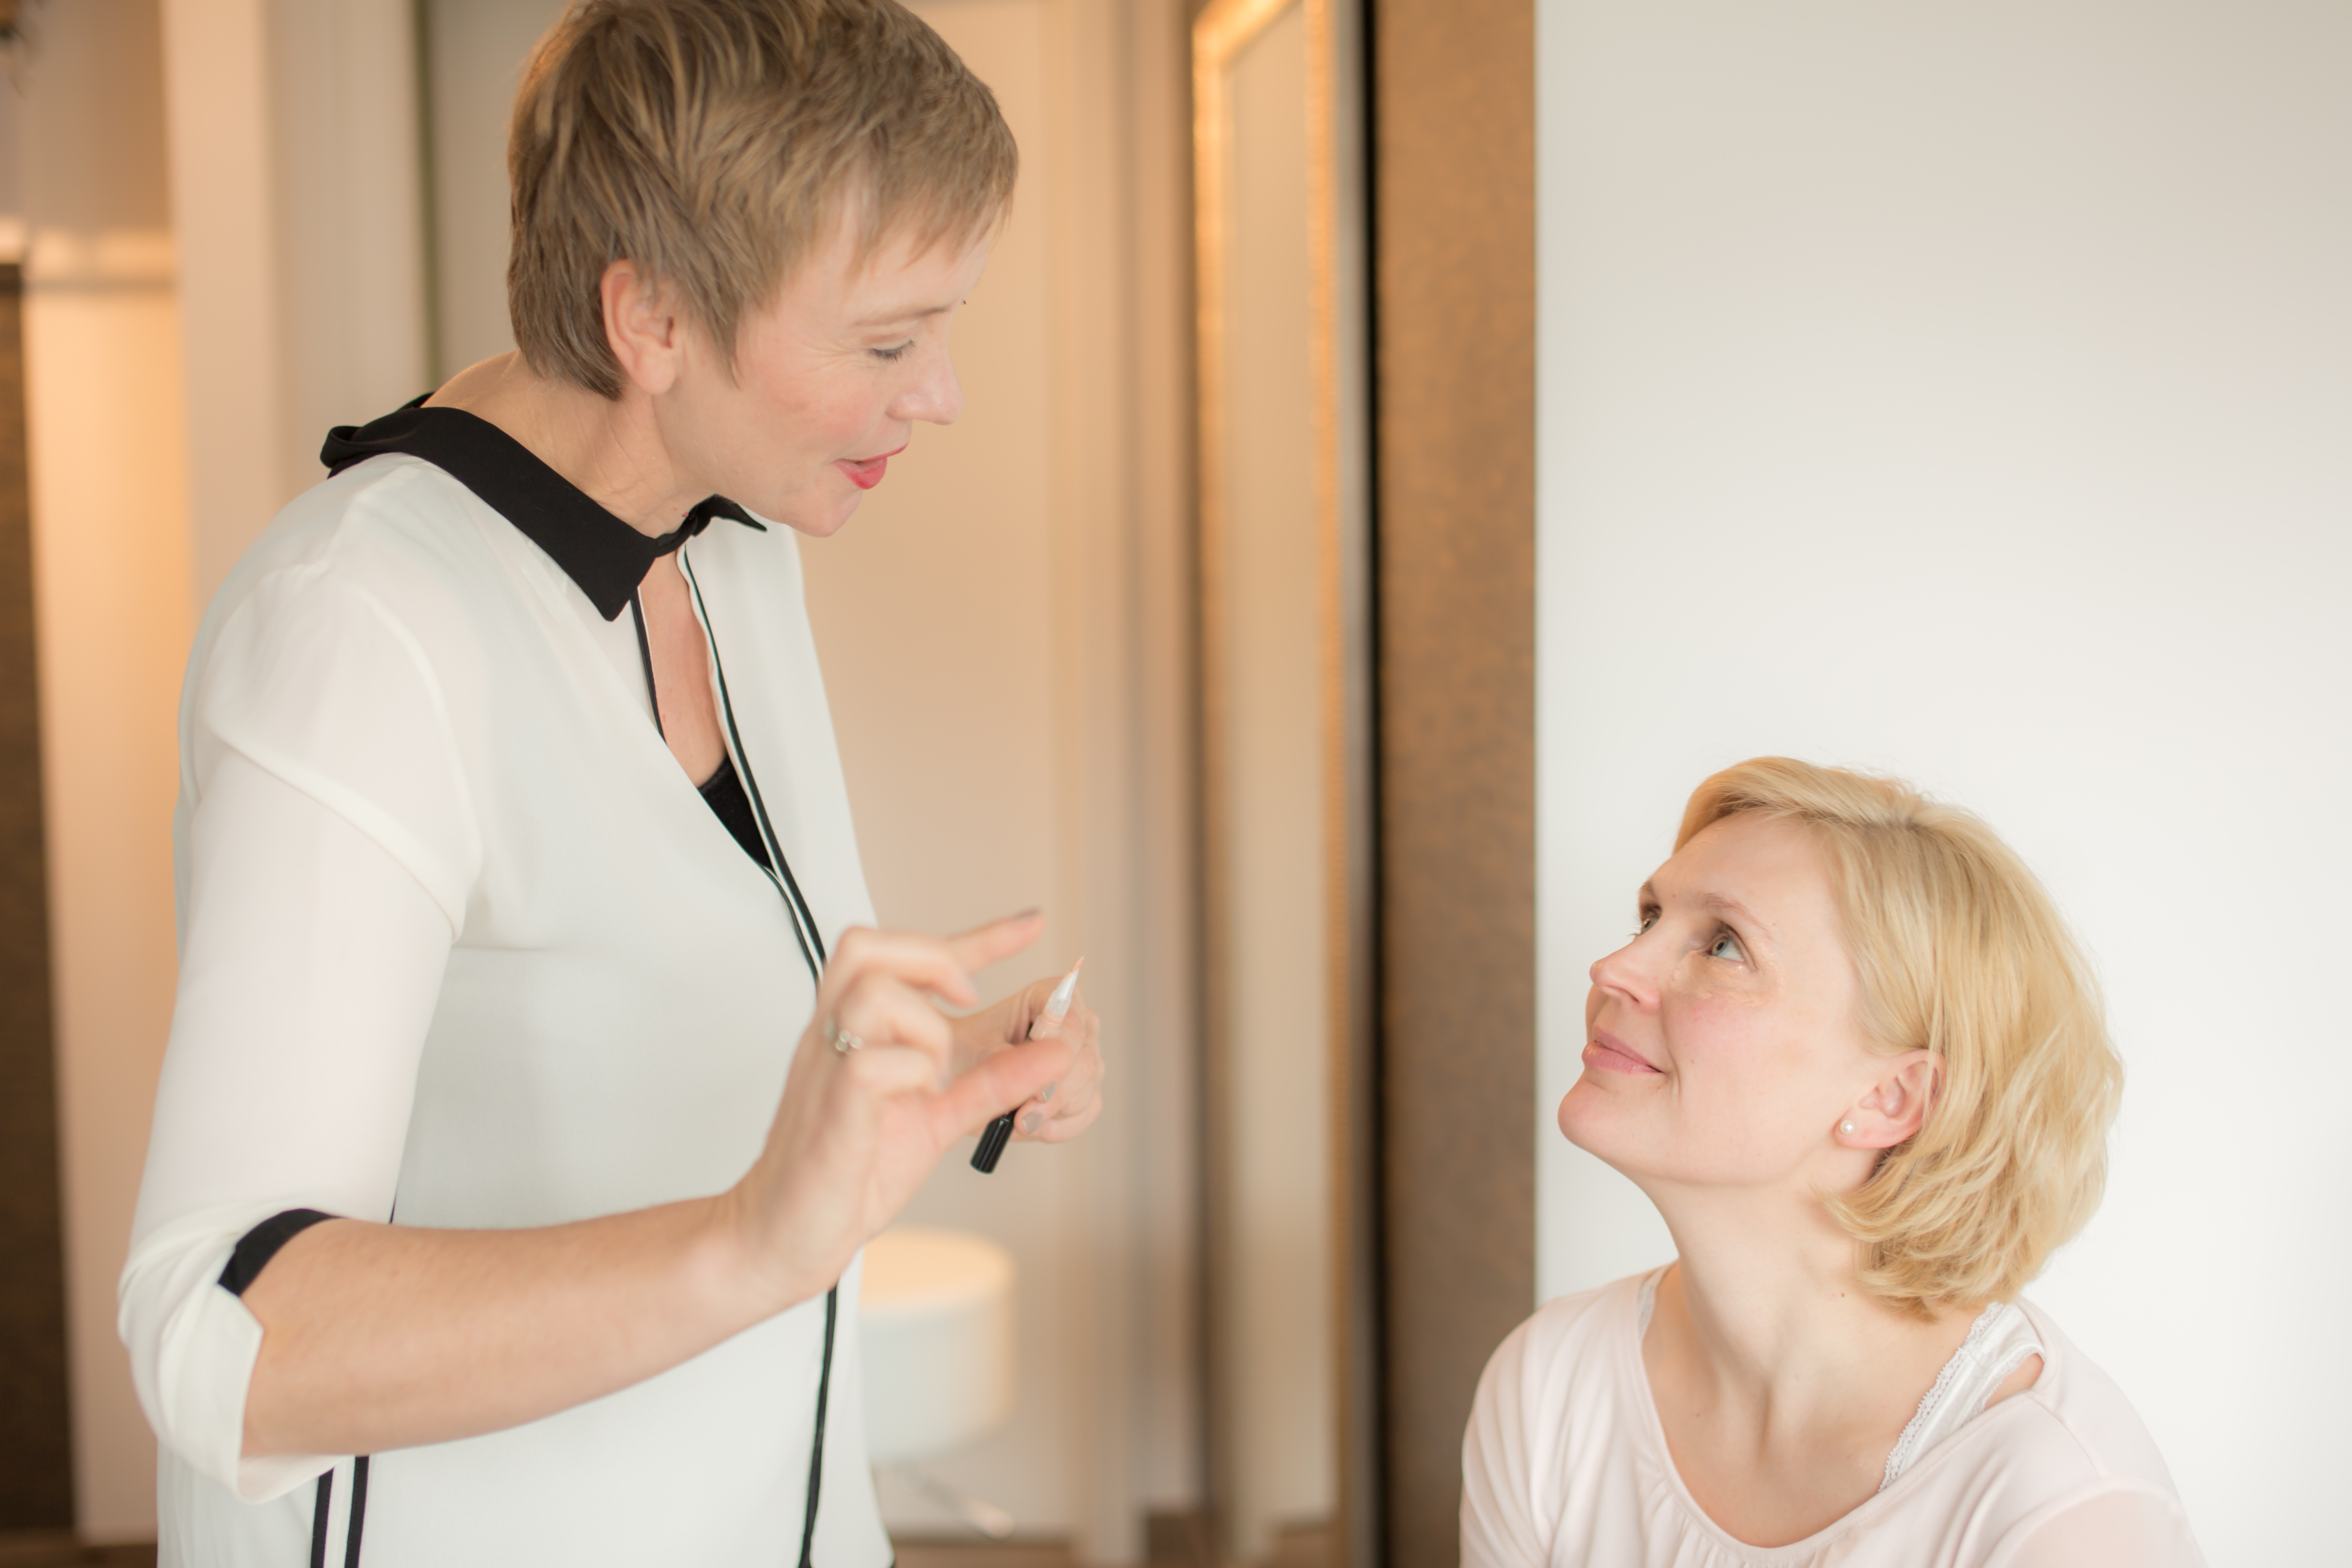 Make-up Kurs- Vermittlung der Make-up Technik